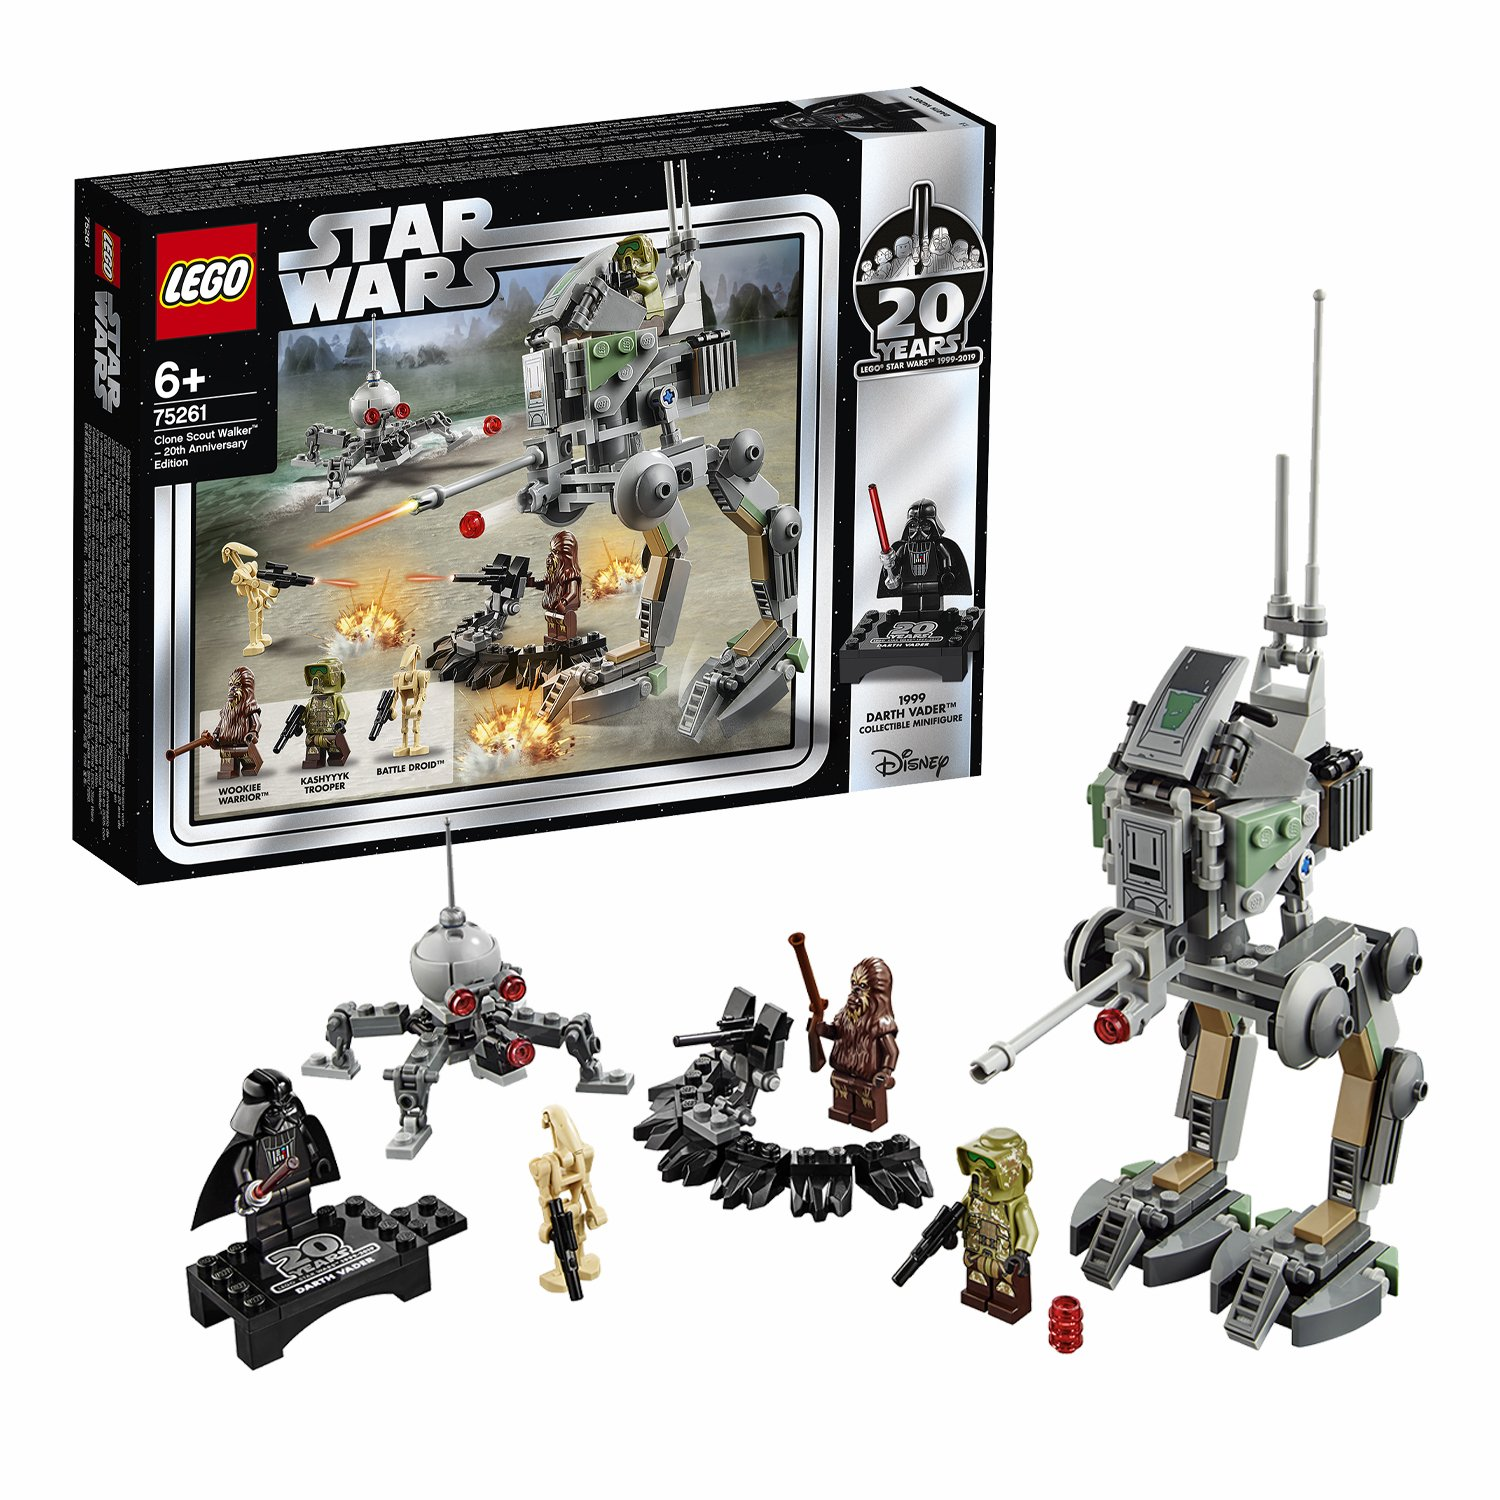 LEGO Star Wars Scout Walker 20th Anniversary Set - 75261